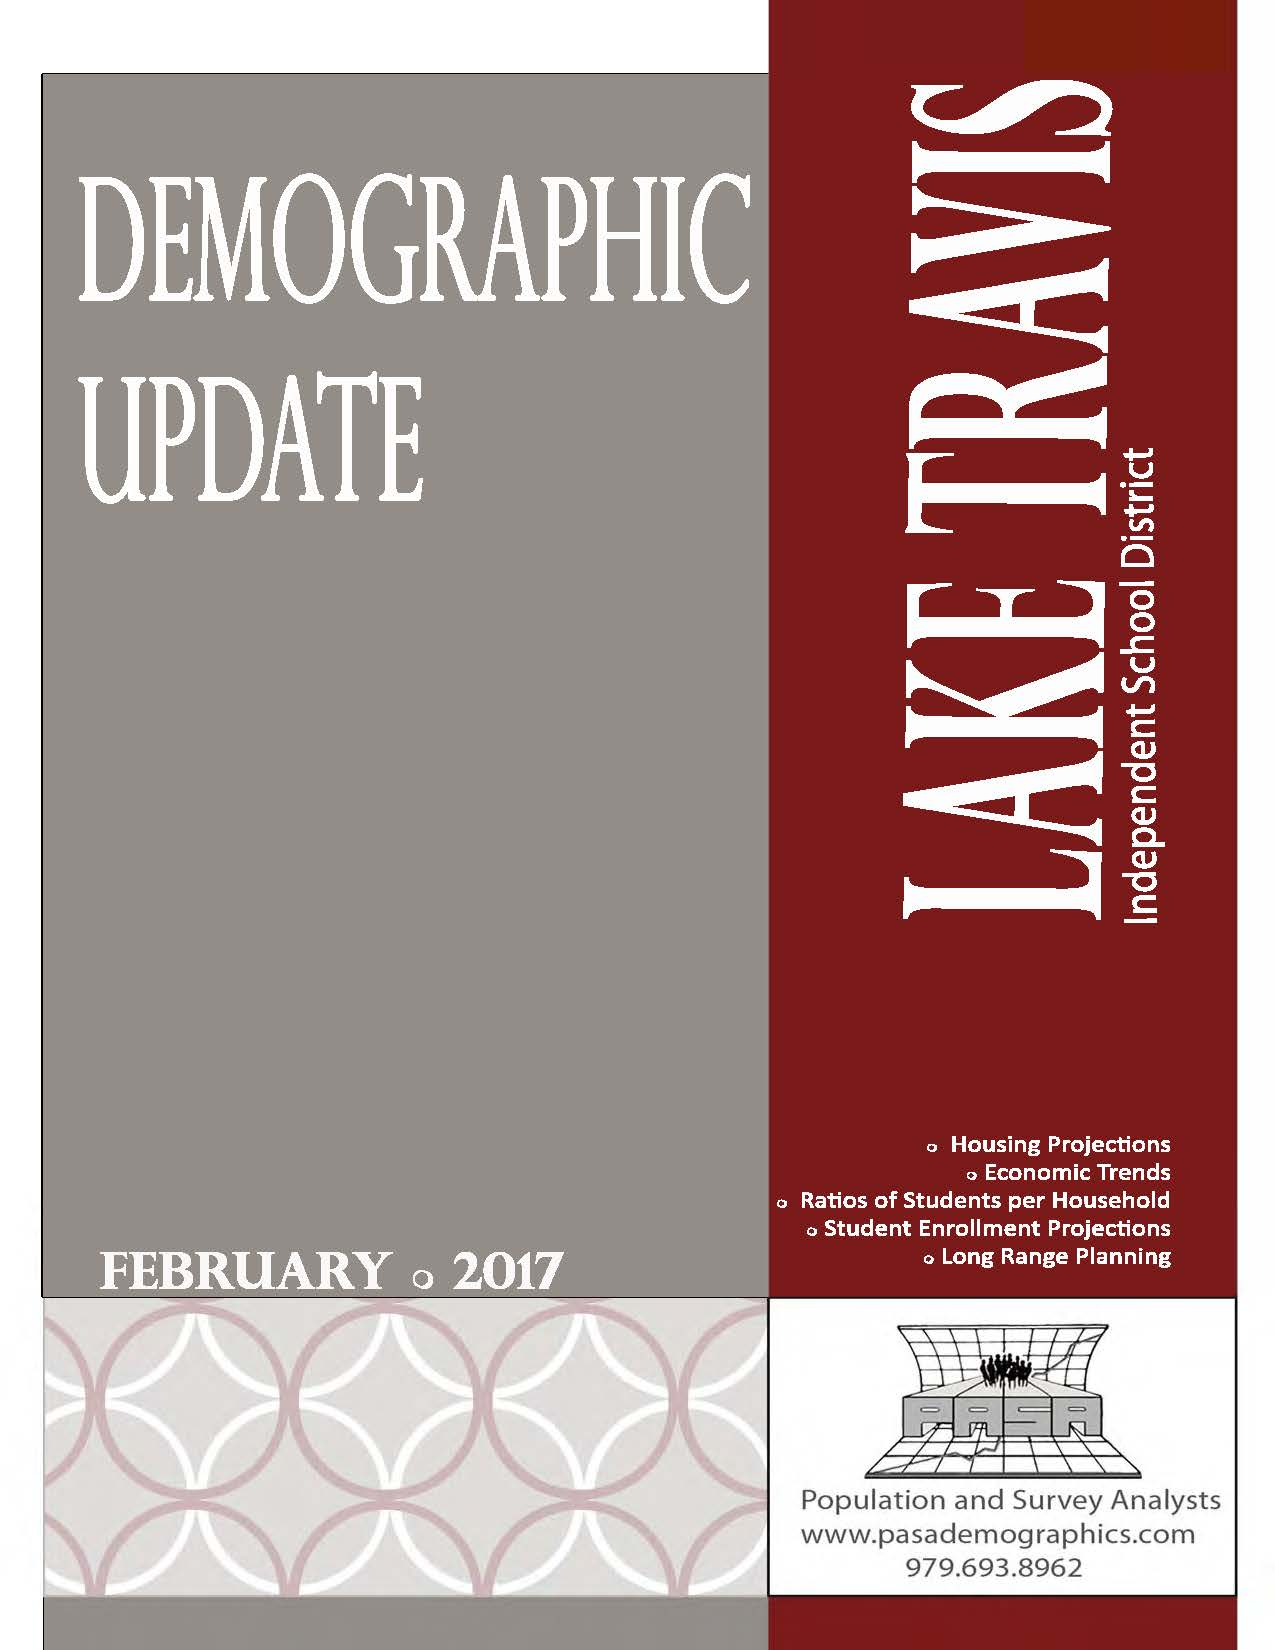 Demographic Update 2017 image